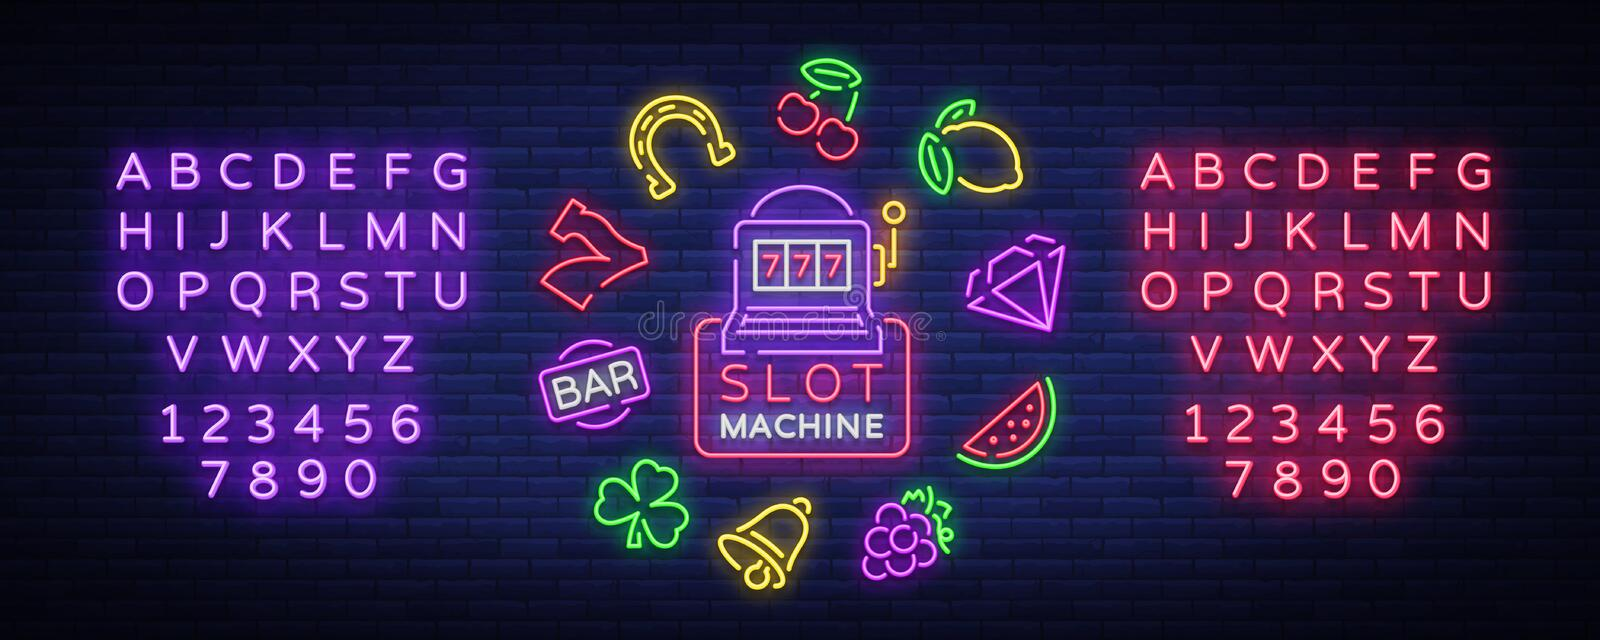 Slot machine is a neon sign. Collection of neon signs for a gaming machine. Game icons for casino. Vector Illustration. On Casino, Fortune and Gambling. Jackpot stock illustration